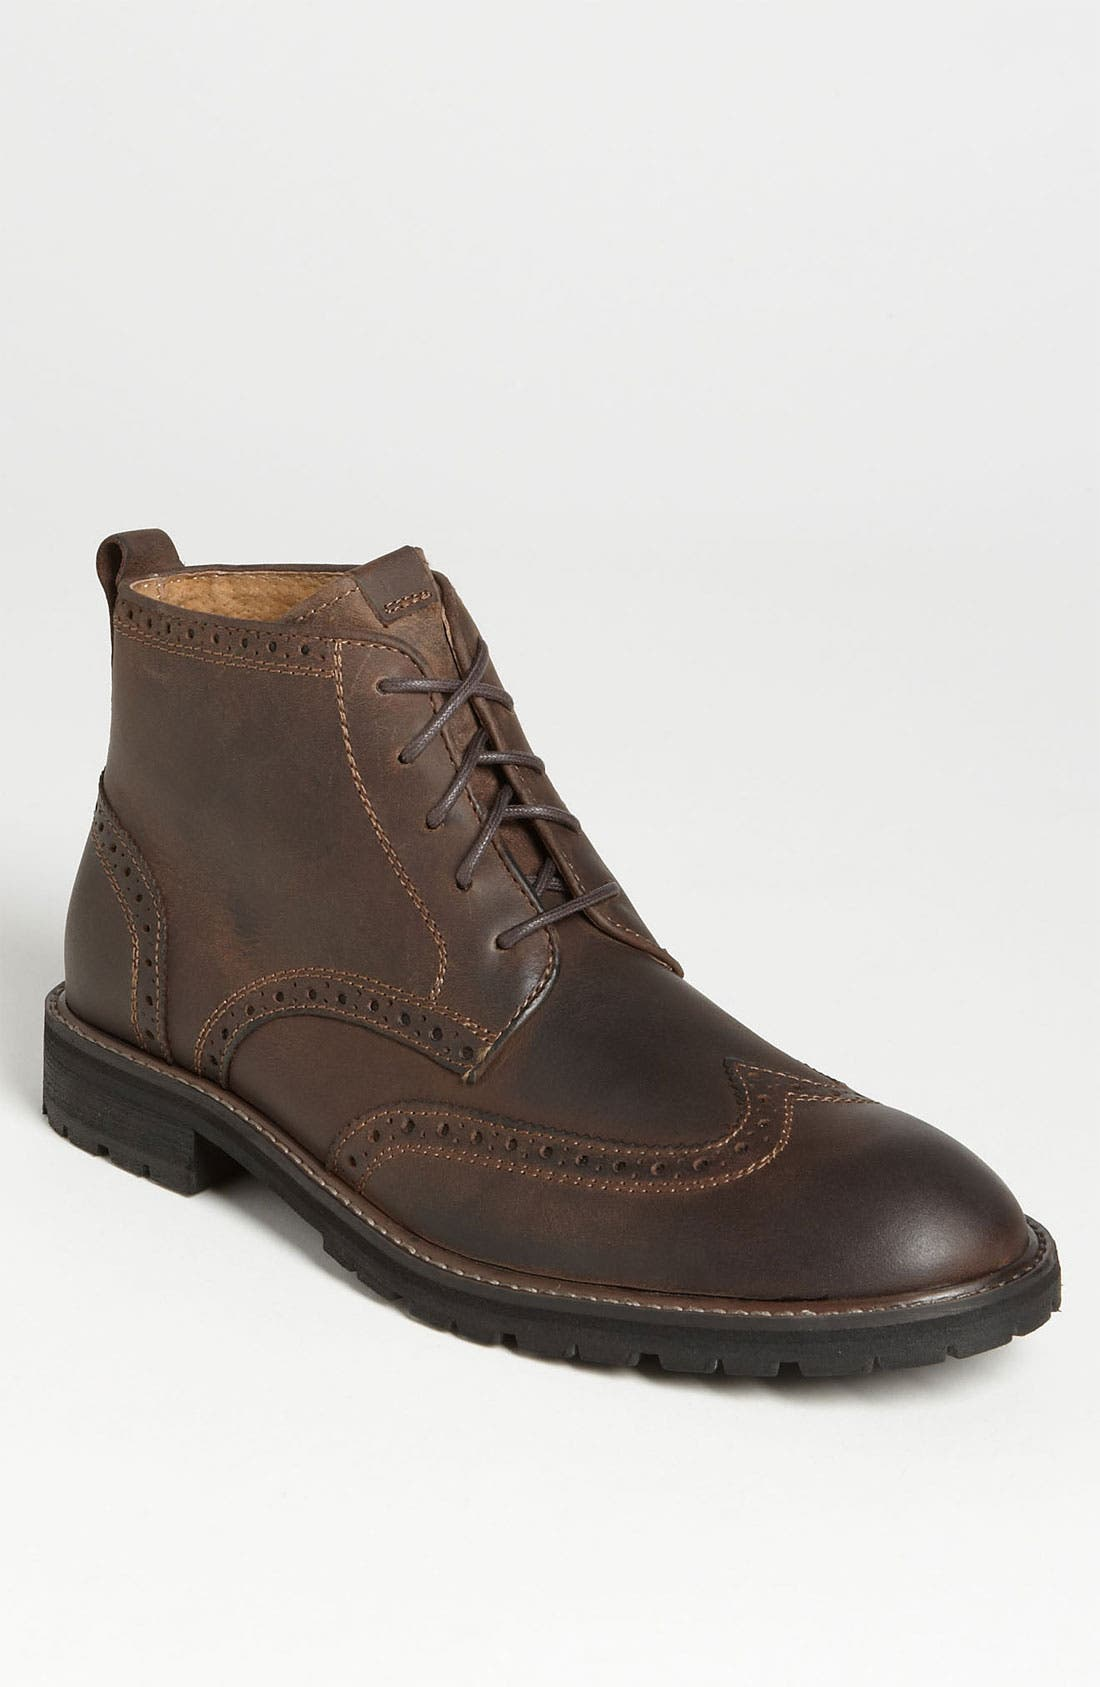 Main Image - Florsheim 'Gaffney' Wingtip Boot